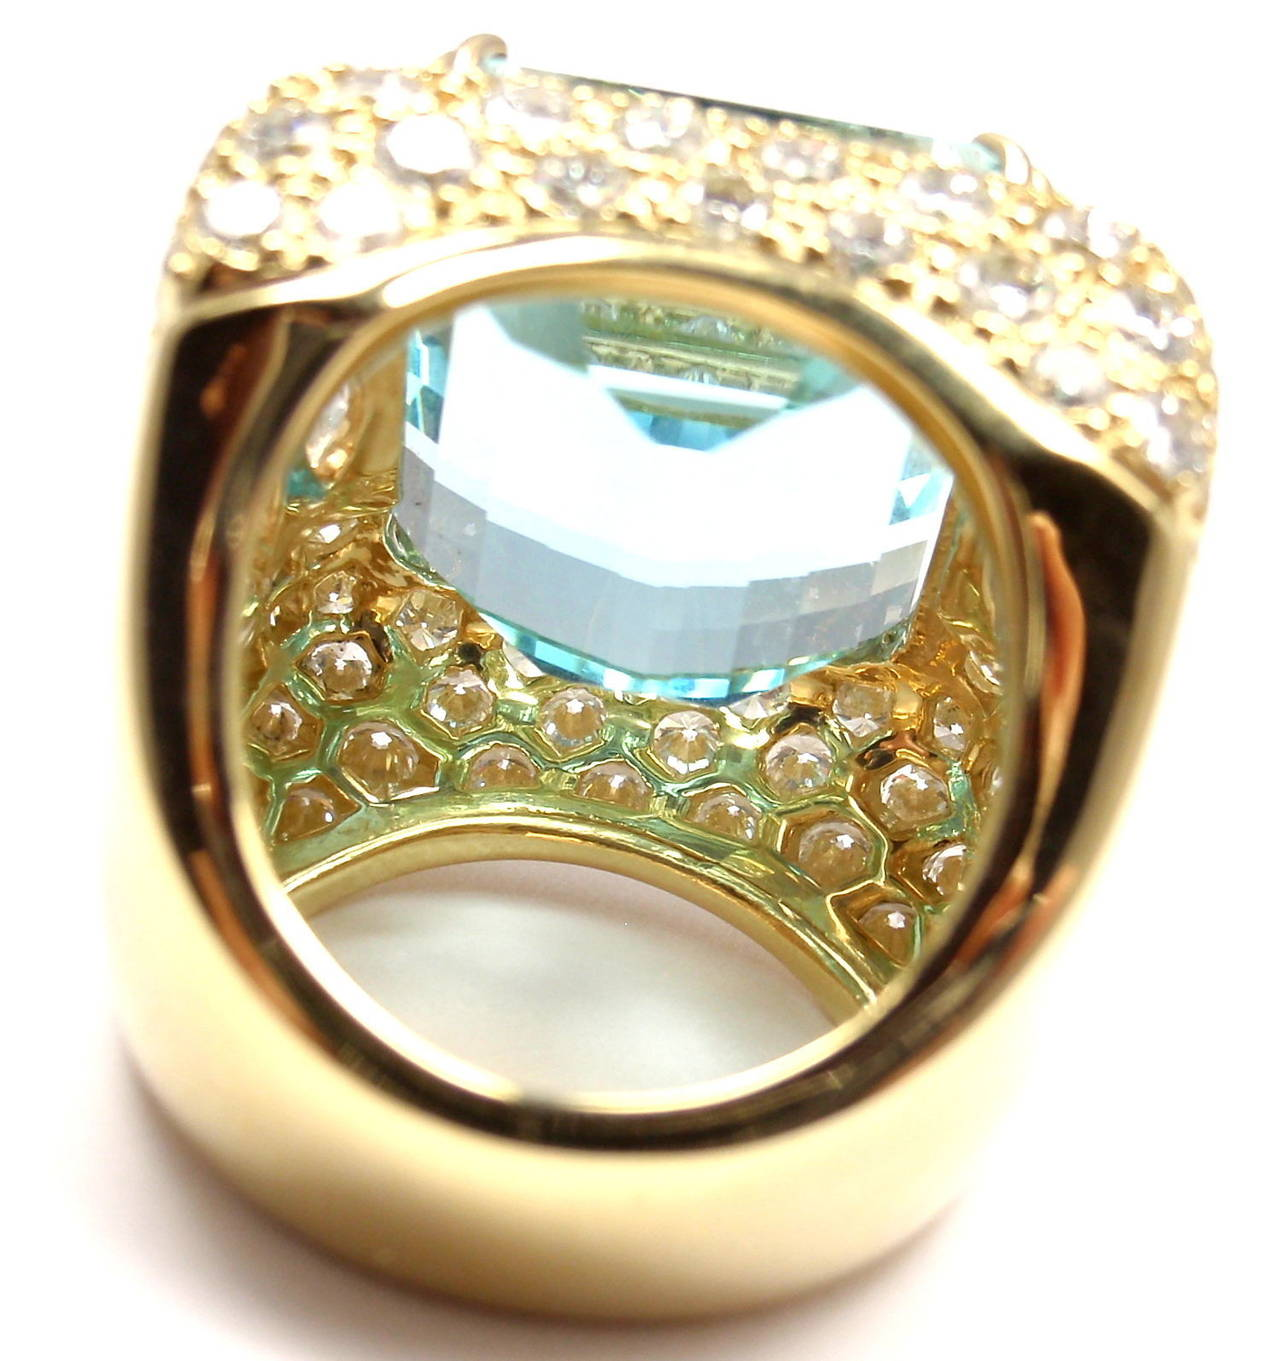 Hammerman Brothers Large 23.70 Carat Aquamarine Diamond Gold Ring In As new Condition For Sale In Southampton, PA